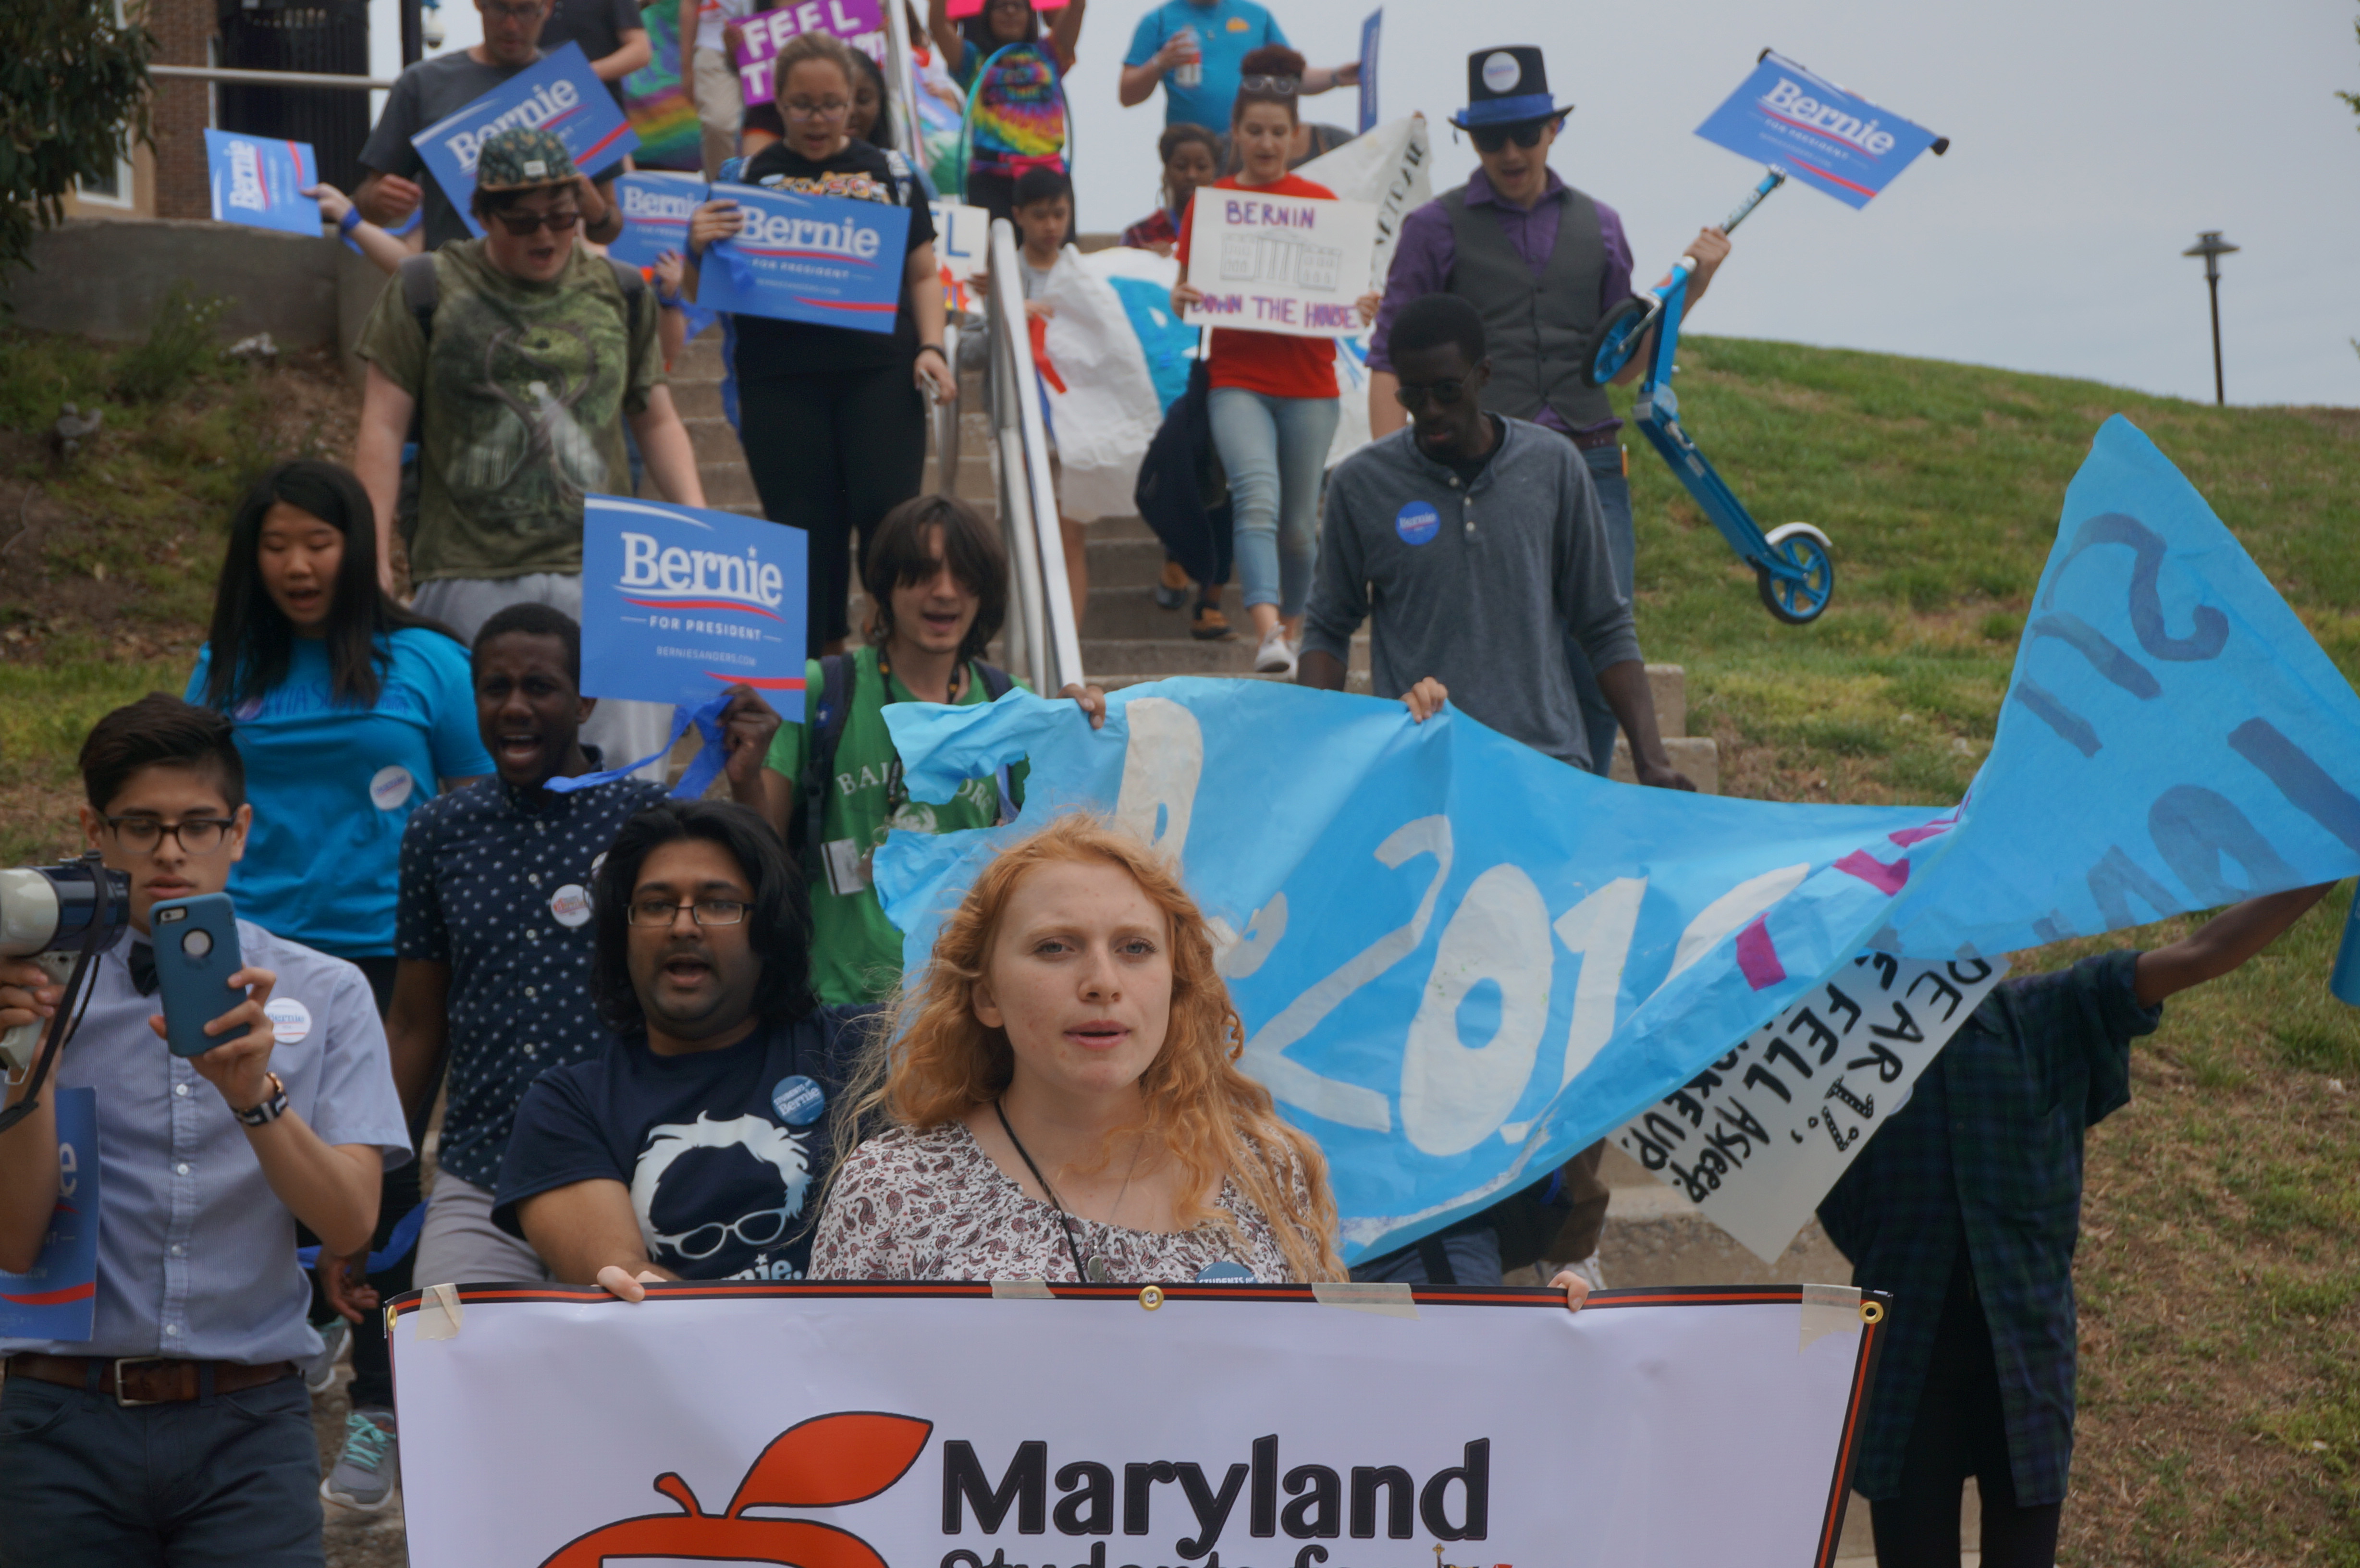 Towson University students march across campus in support of Bernie Sanders for president. Photo by Alex Ziolkowski.